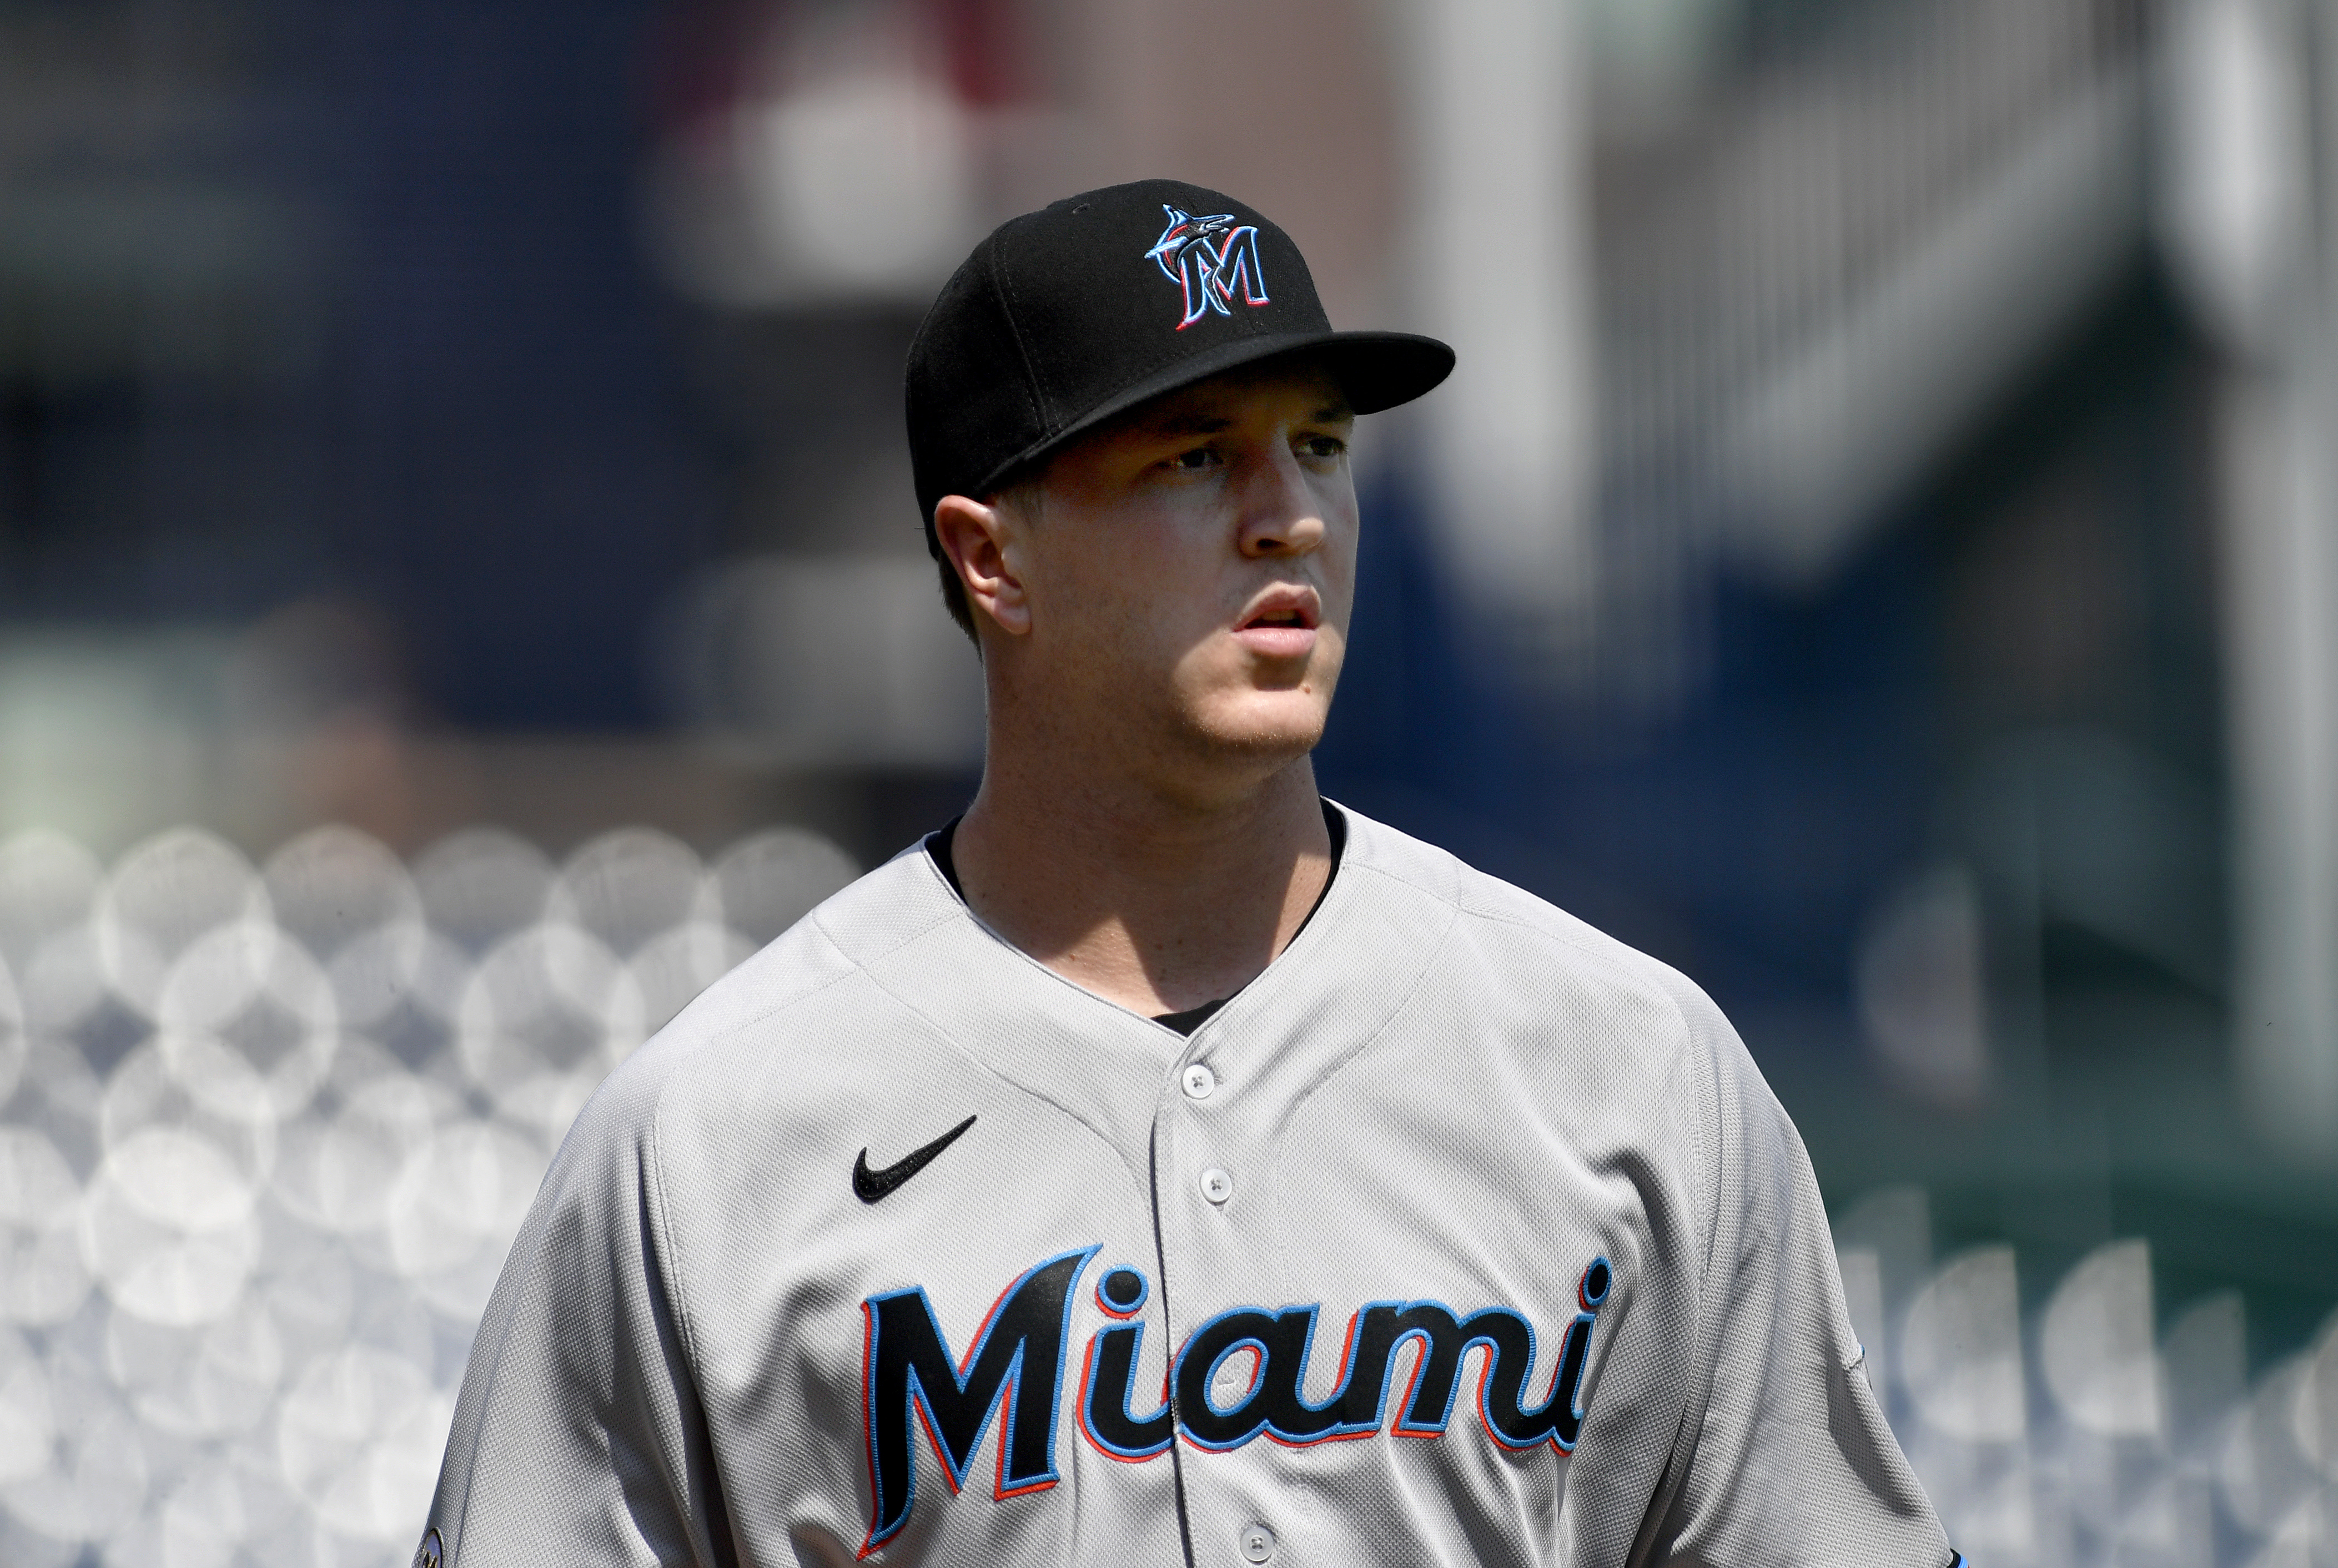 Miami Marlins pitcher Trevor Rogers (28) walks into the dugout during the Miami Marlins versus Washington Nationals MLB game at Nationals Park